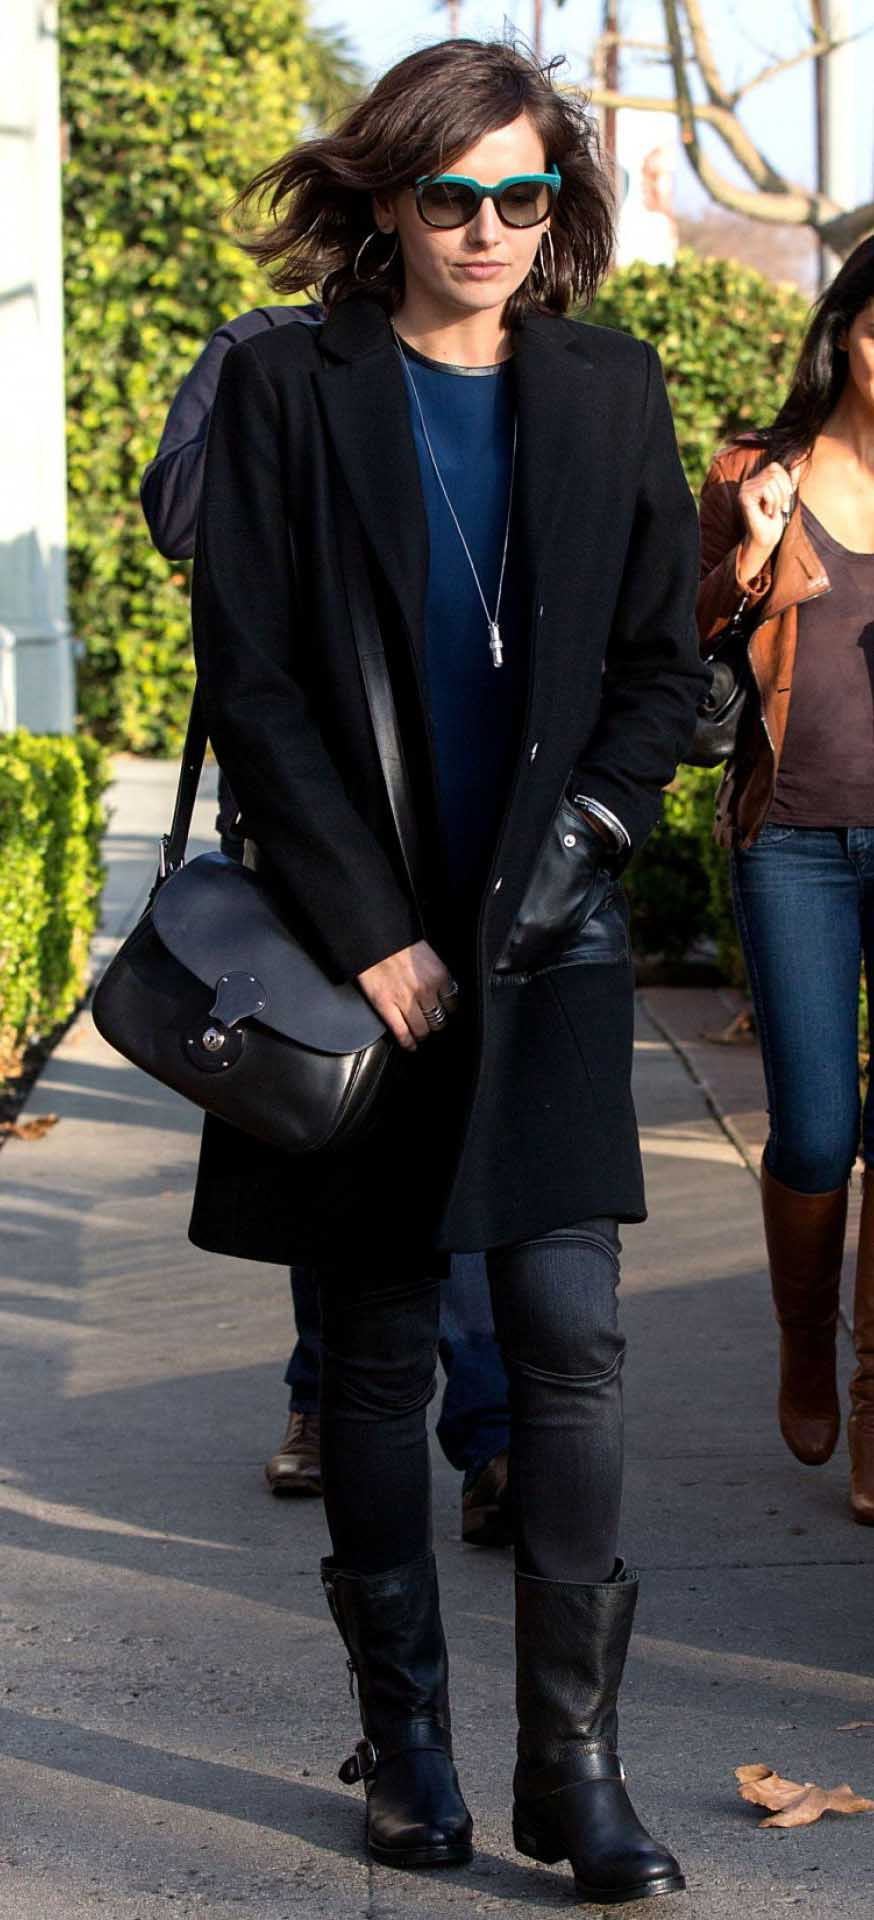 black-skinny-jeans-black-shoe-boots-blue-navy-sweater-necklace-pend-sun-black-jacket-coat-black-bag-camillabelle-brun-fall-winter-weekend.jpg